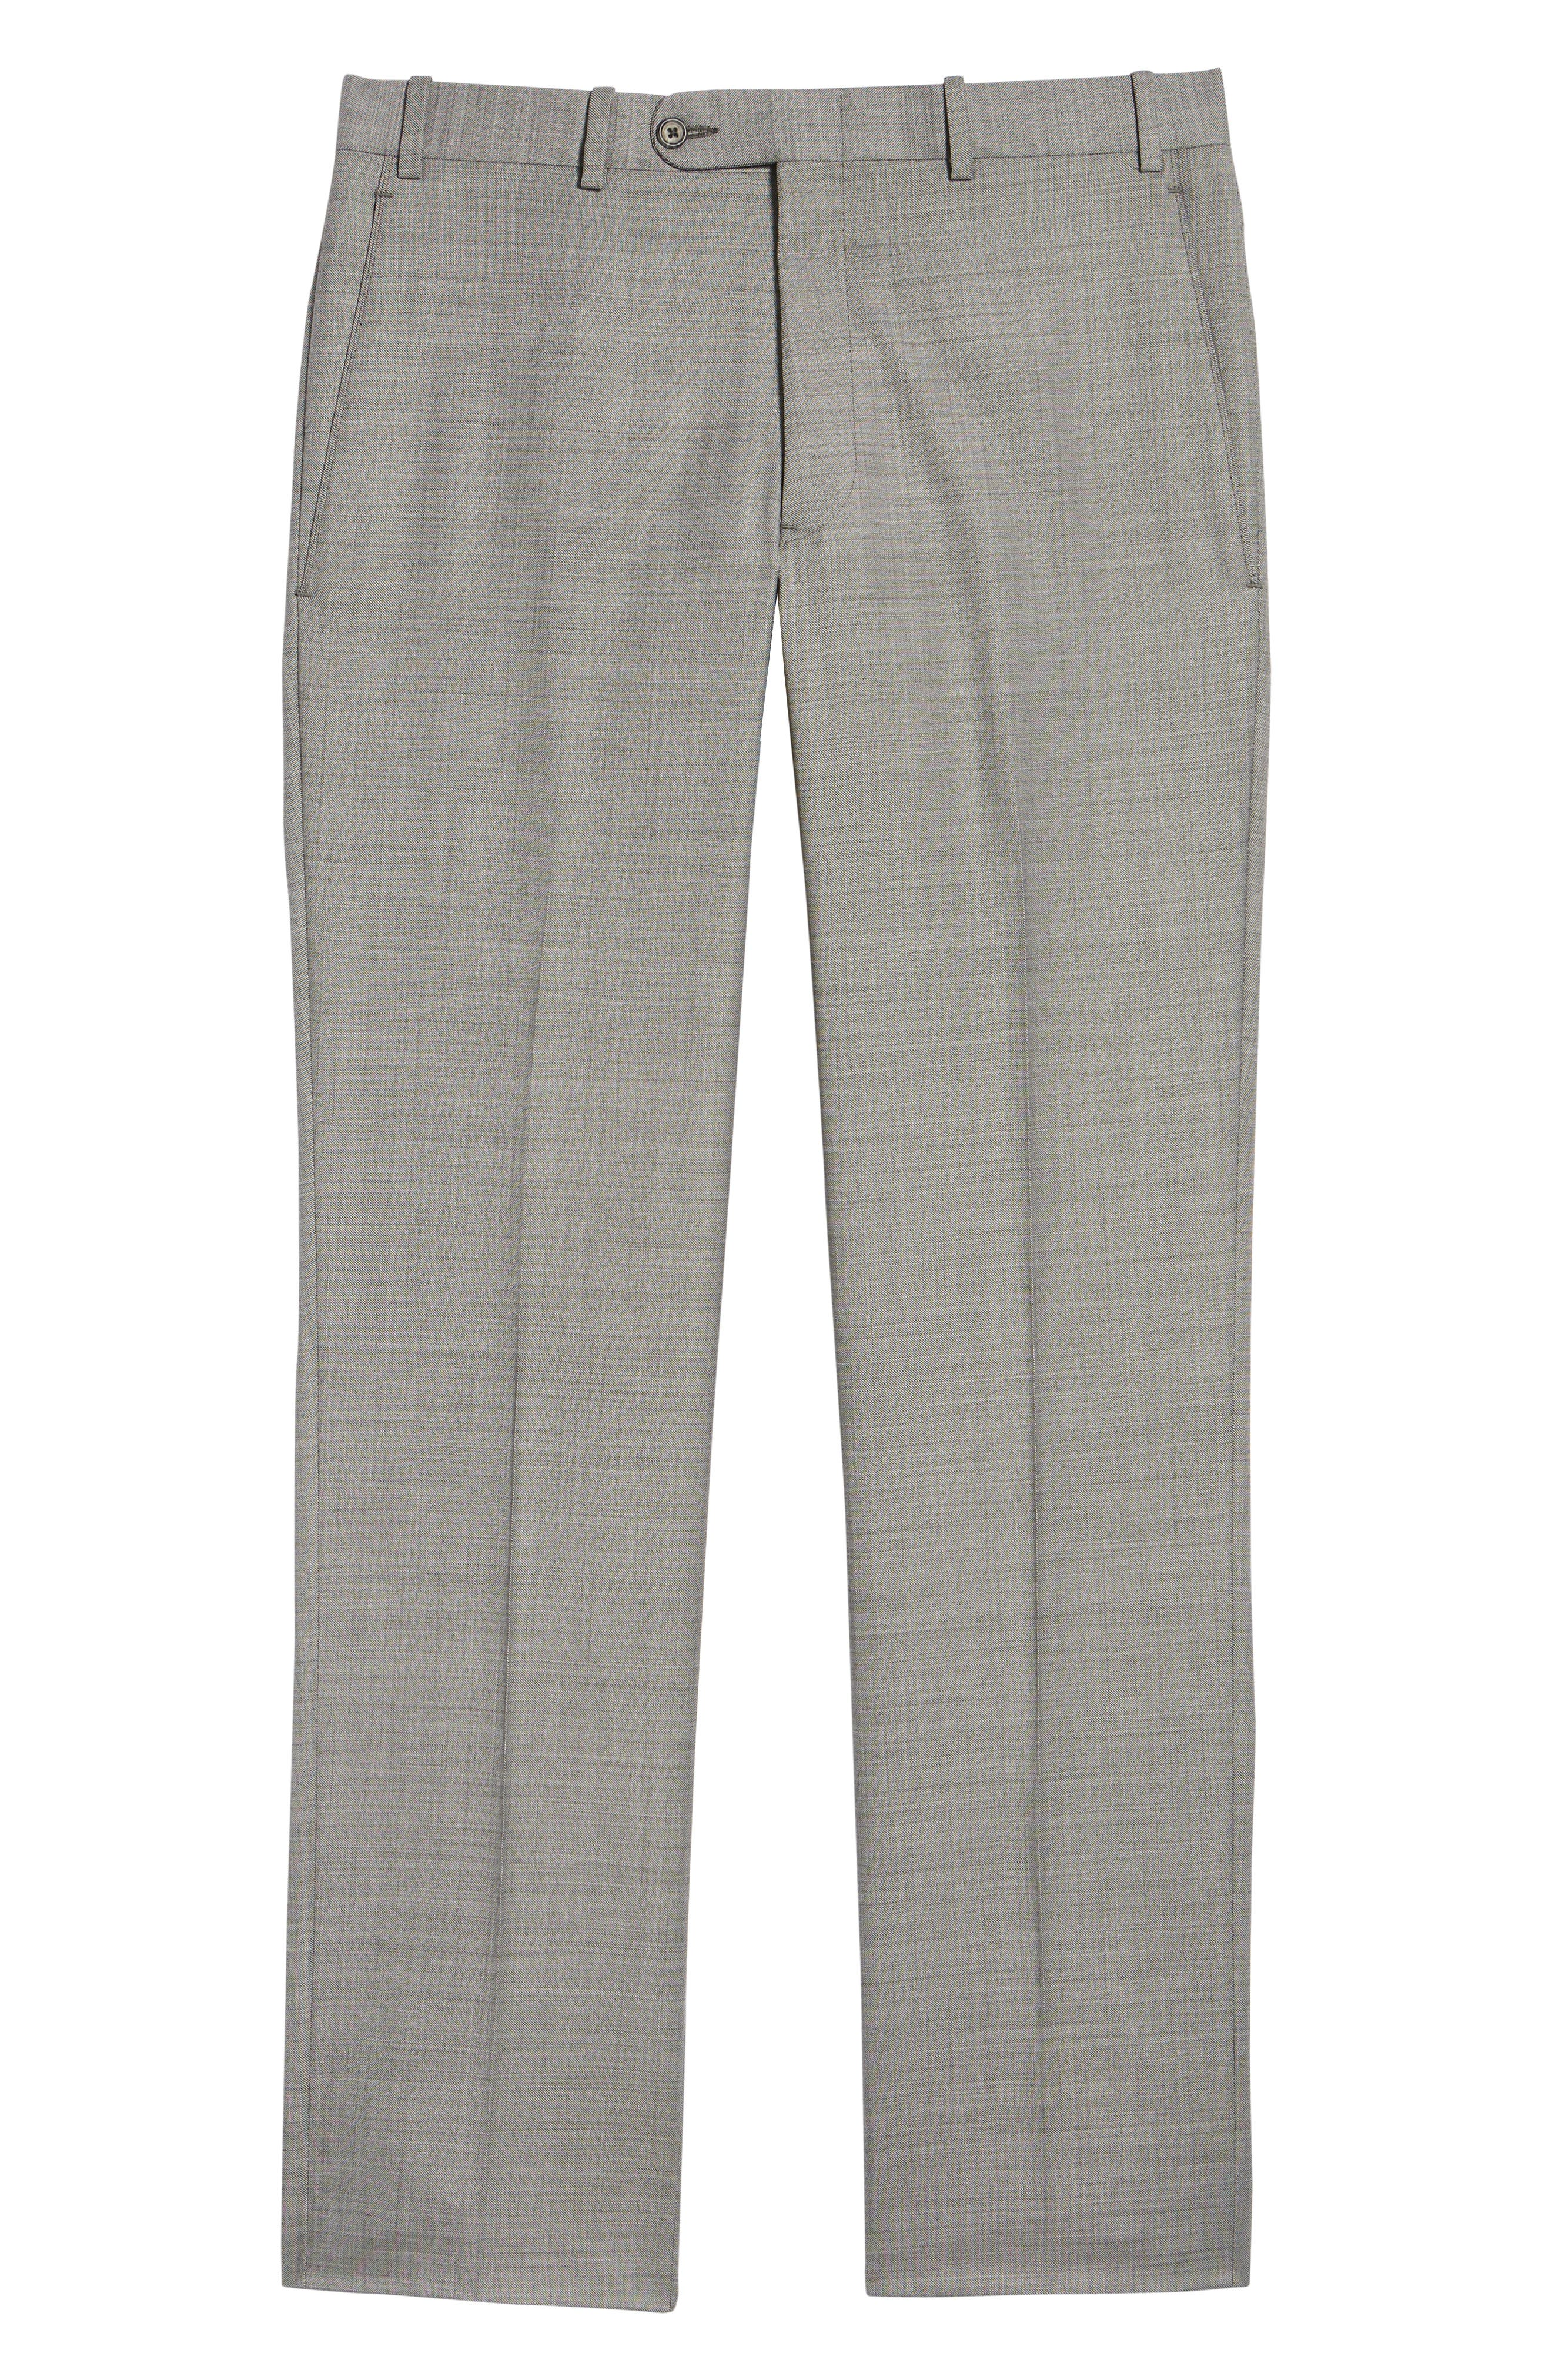 JOHN W. NORDSTROM<SUP>®</SUP>, Traditional Fit Flat Front Solid Wool Trousers, Alternate thumbnail 6, color, GREY PEARL